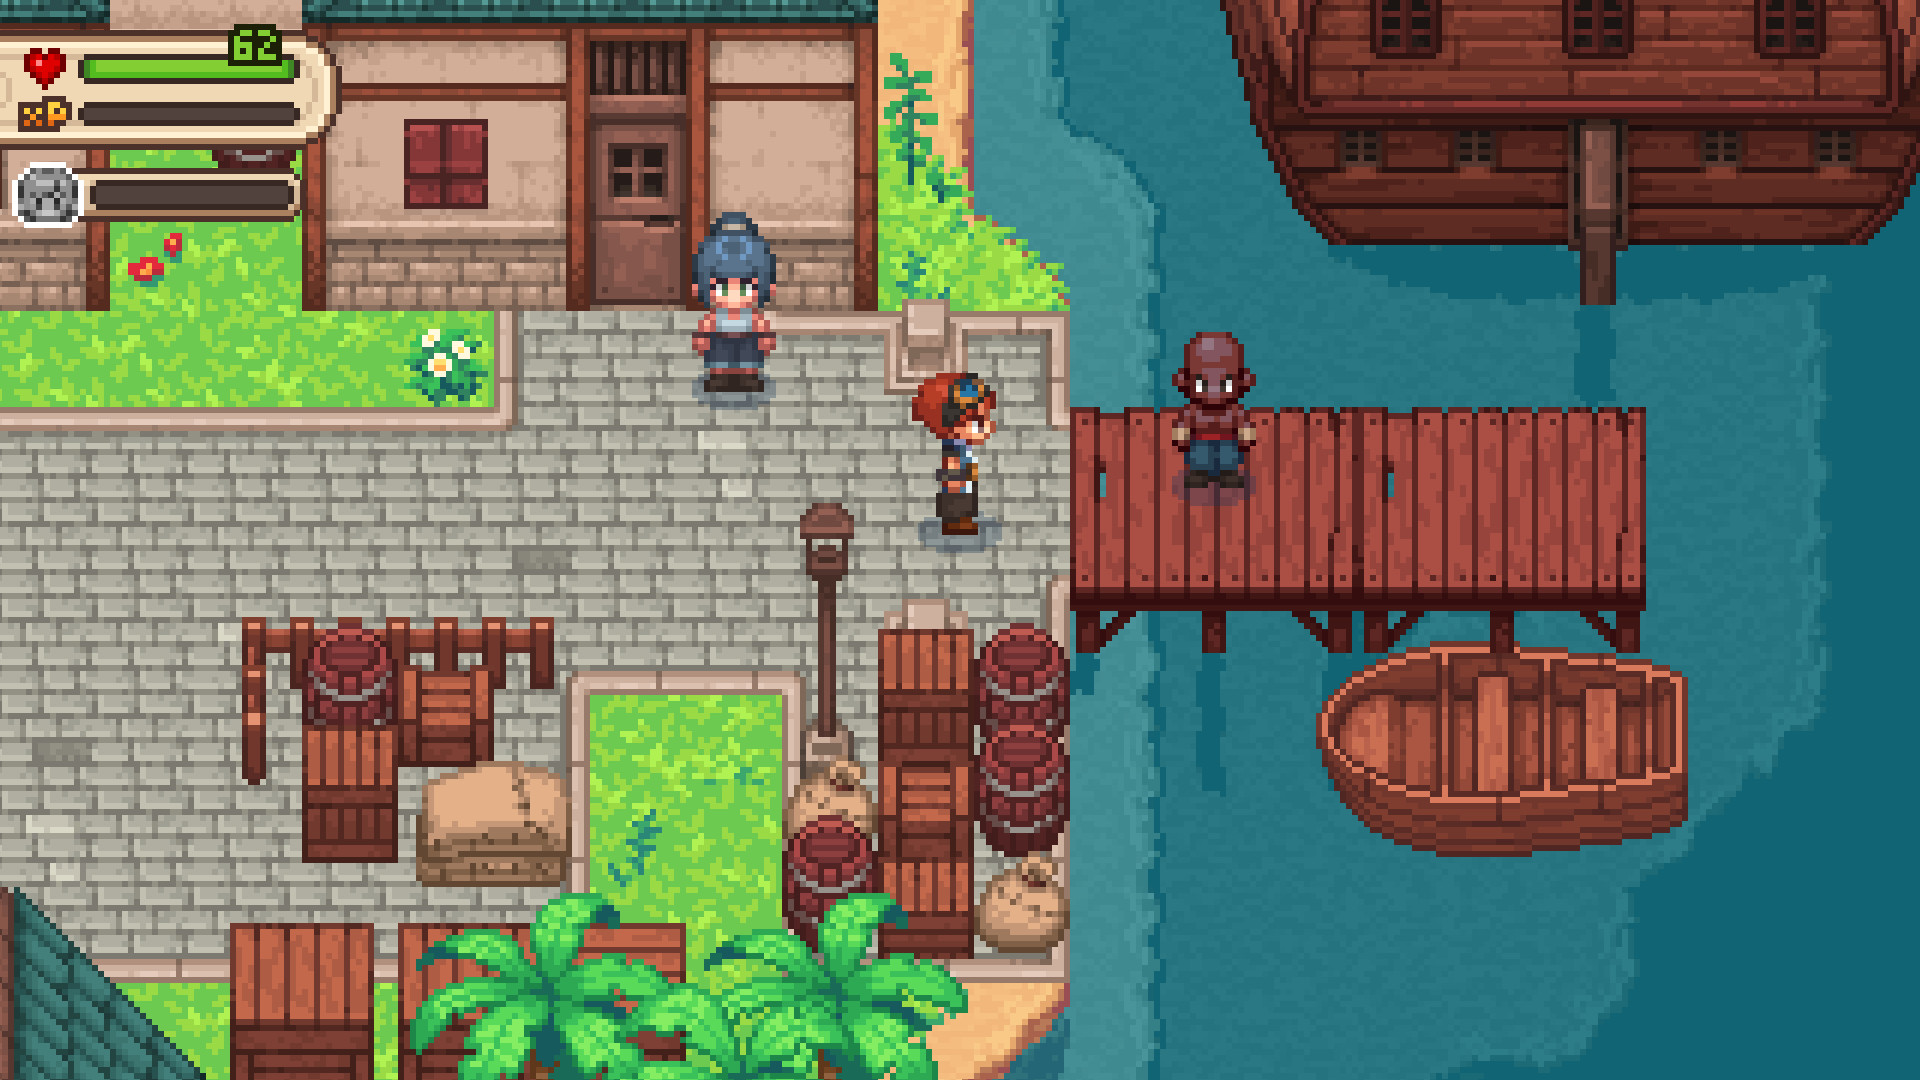 Evoland 2: A Slight Case of Spacetime Continuum Disorder Review